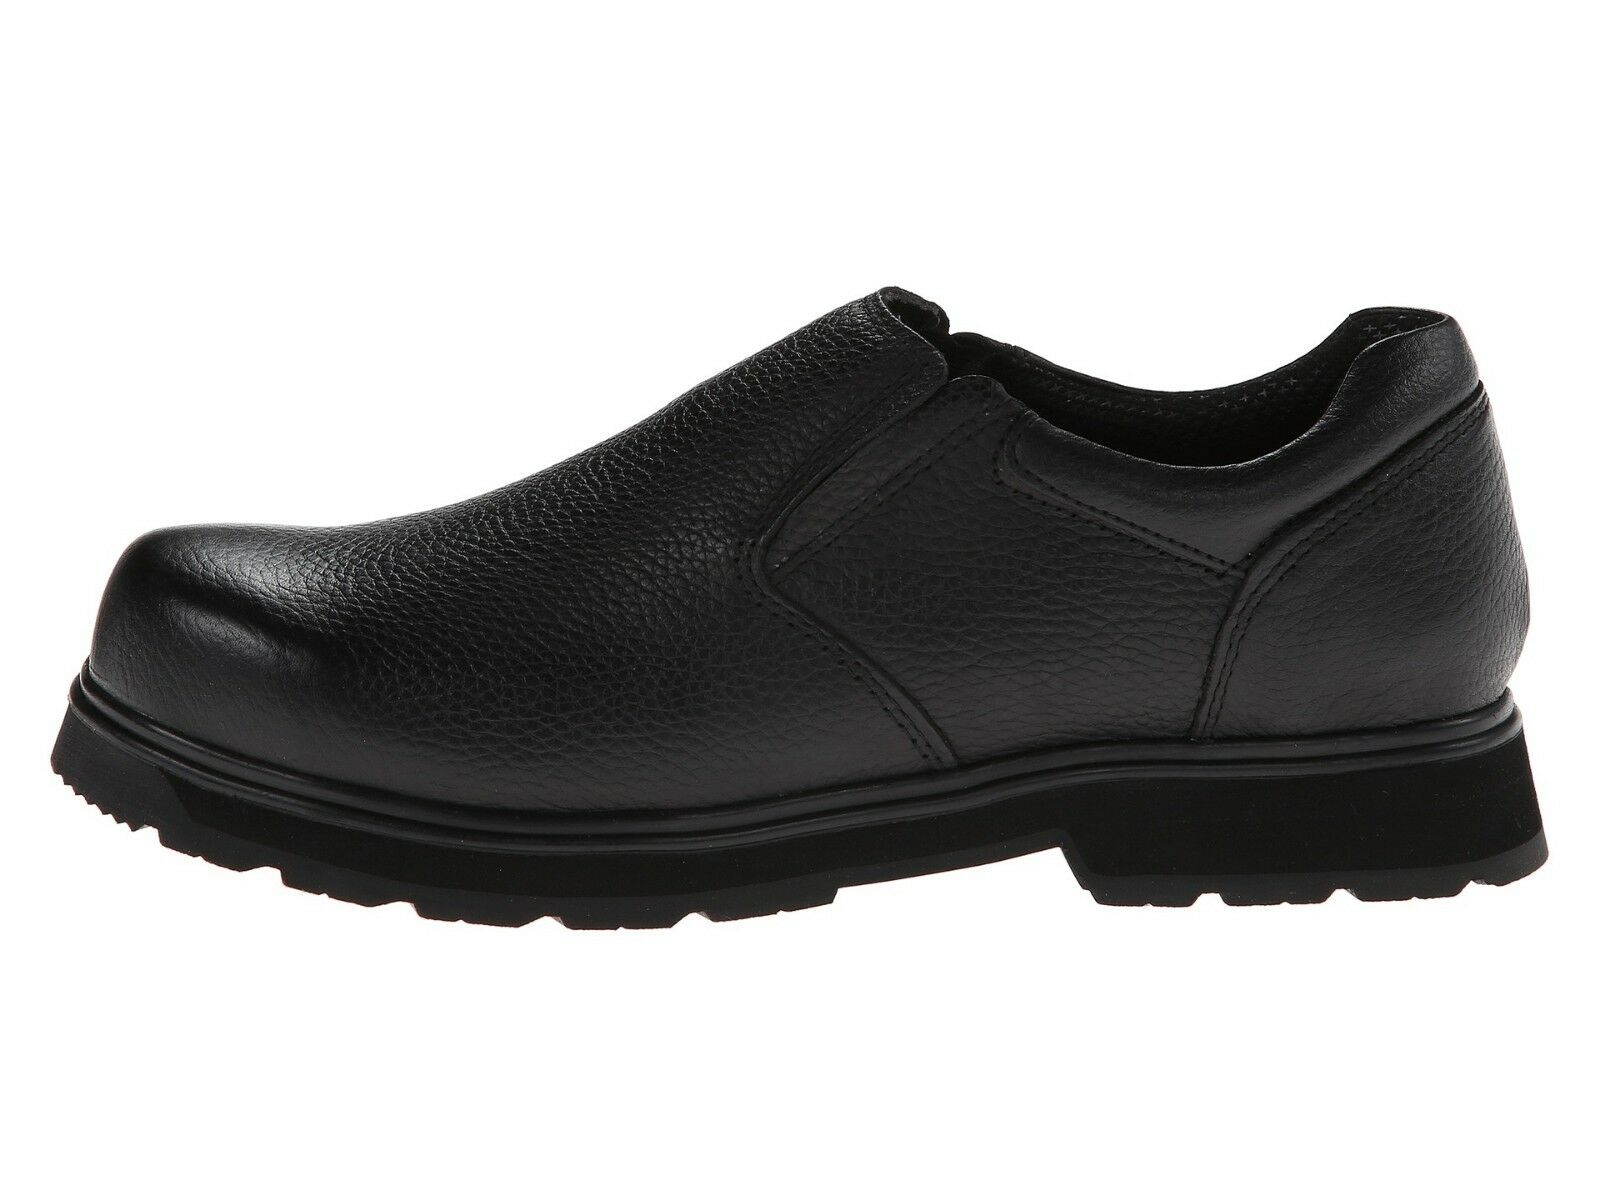 Dr. Scholl's Men's Winder Work shoes (Wide) Size  8 -11 New